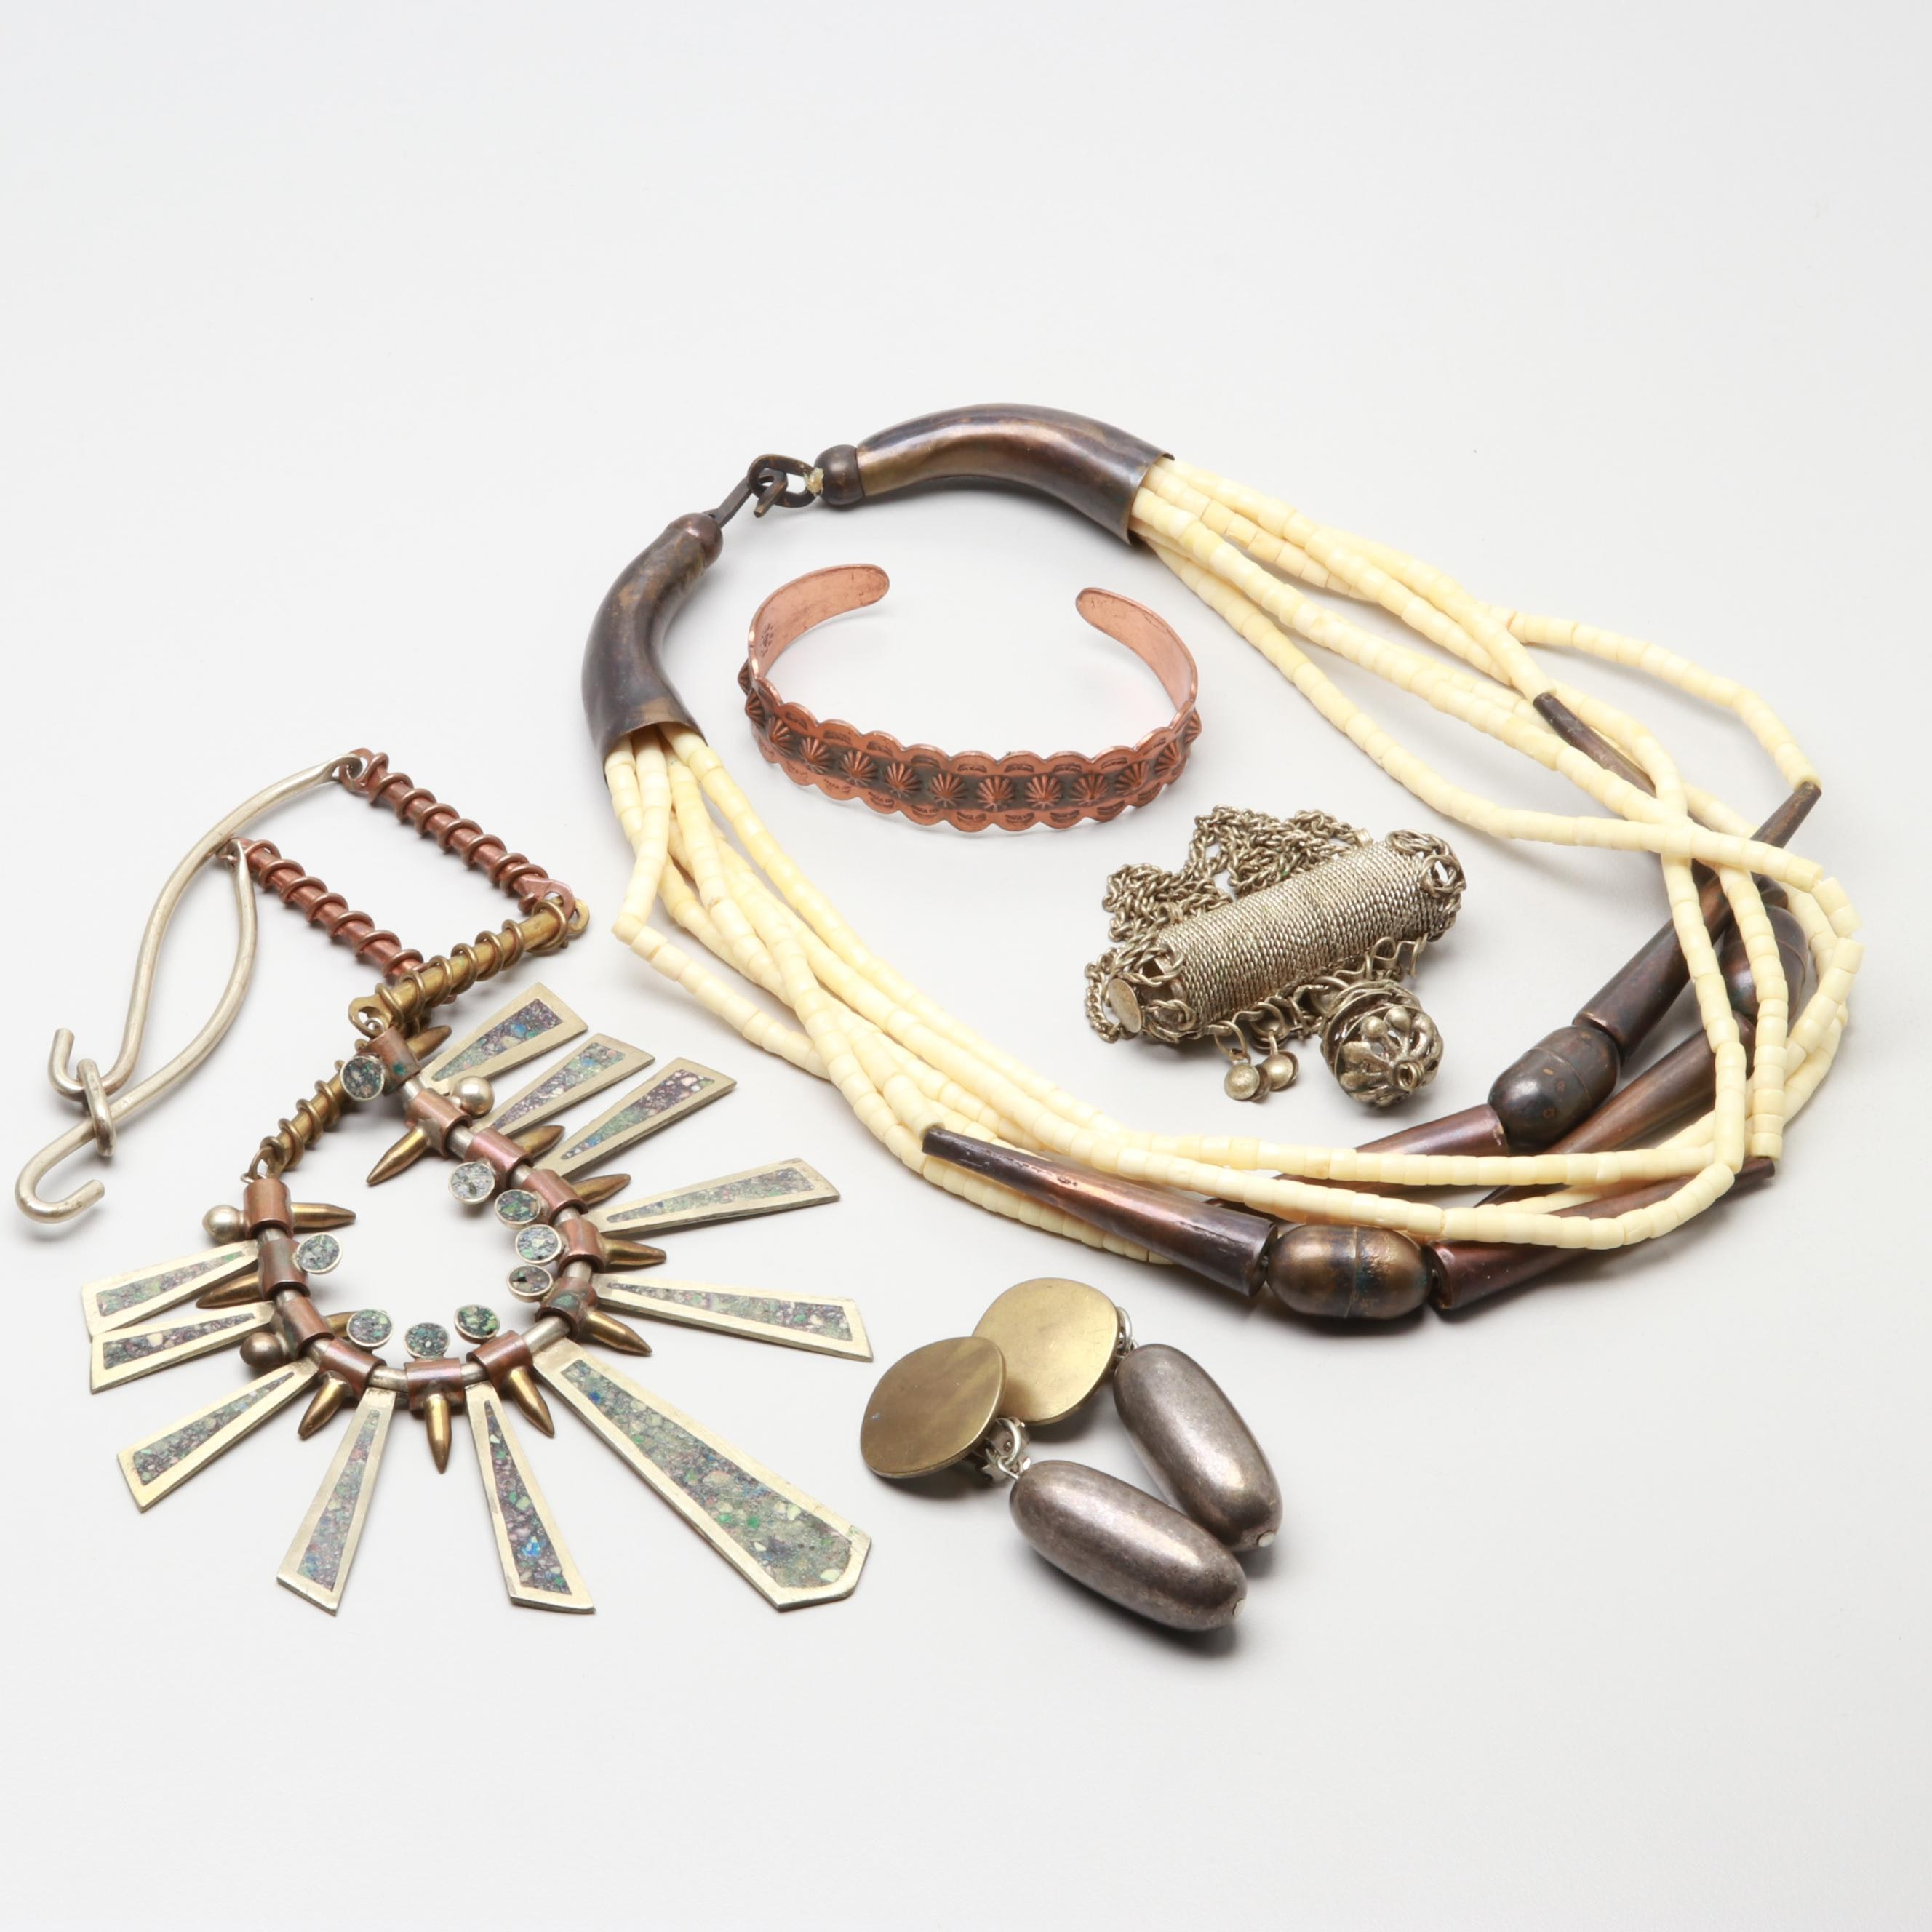 Costume Jewelry Bone and Chips in Resin Necklaces, Bracelet and Earrings